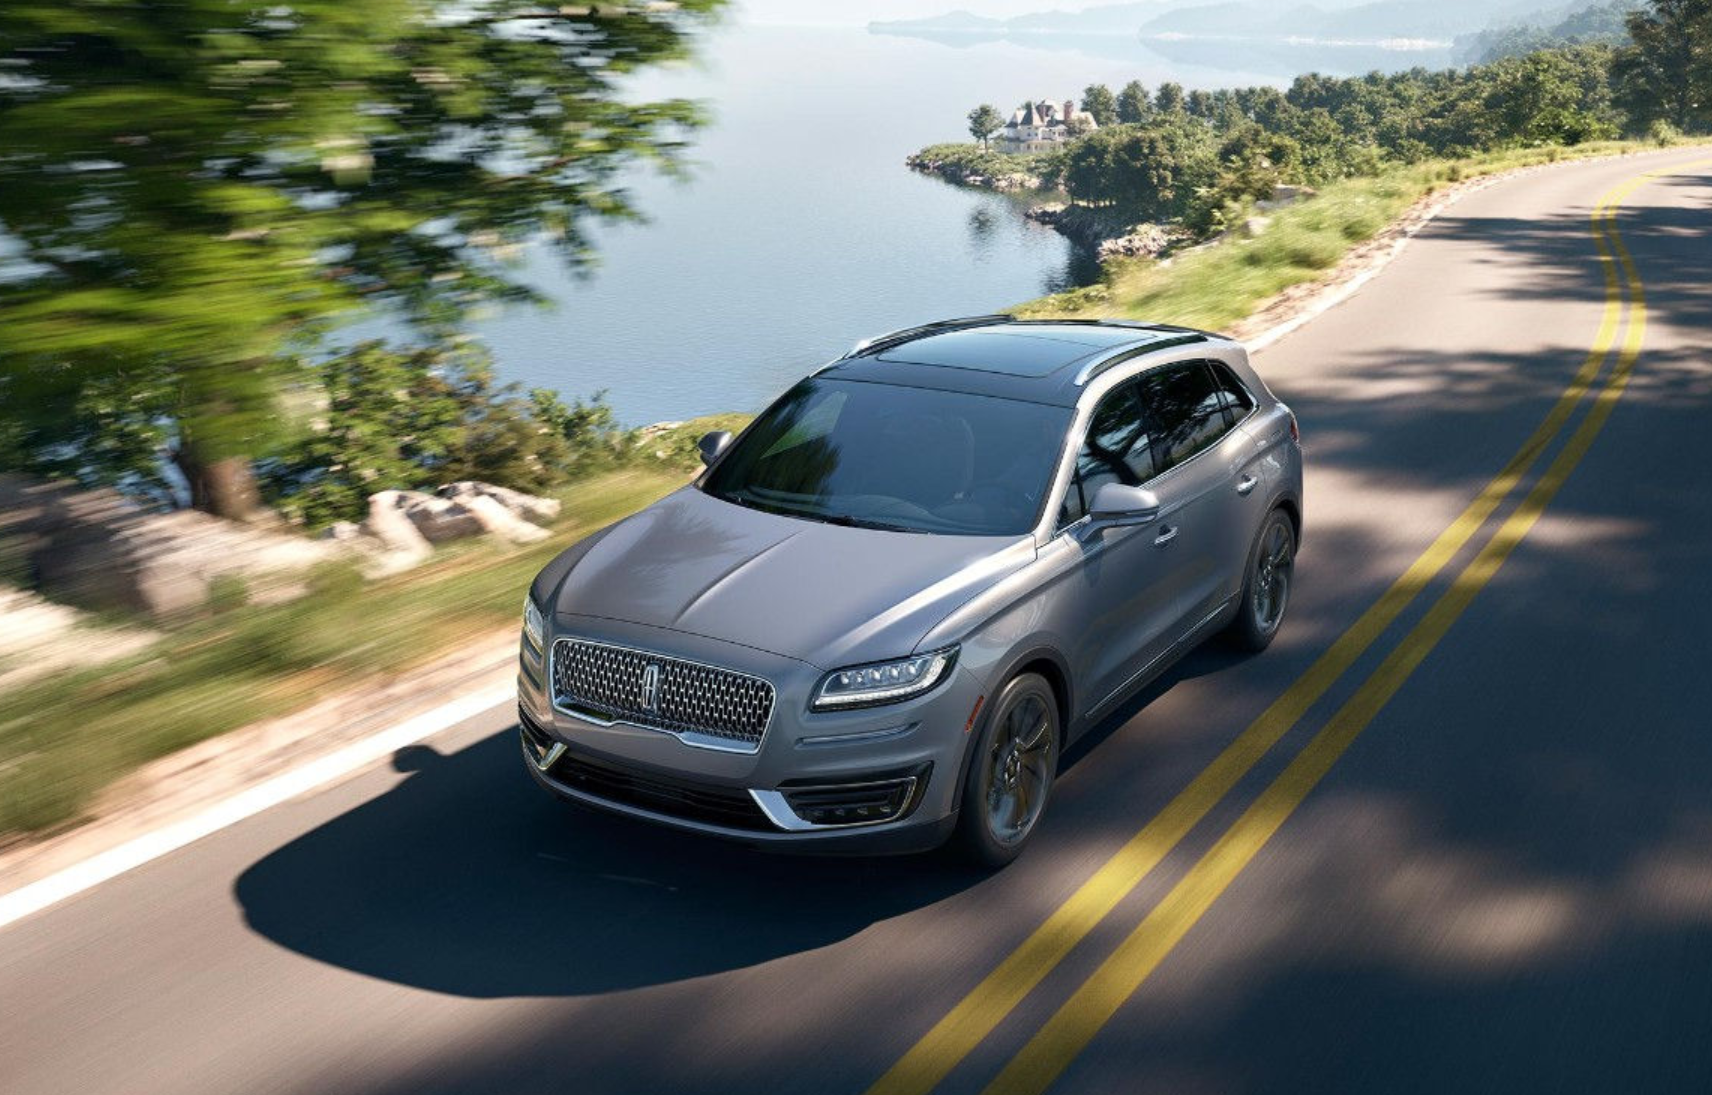 Sneak Preview: 2019 Lincoln Nautilus